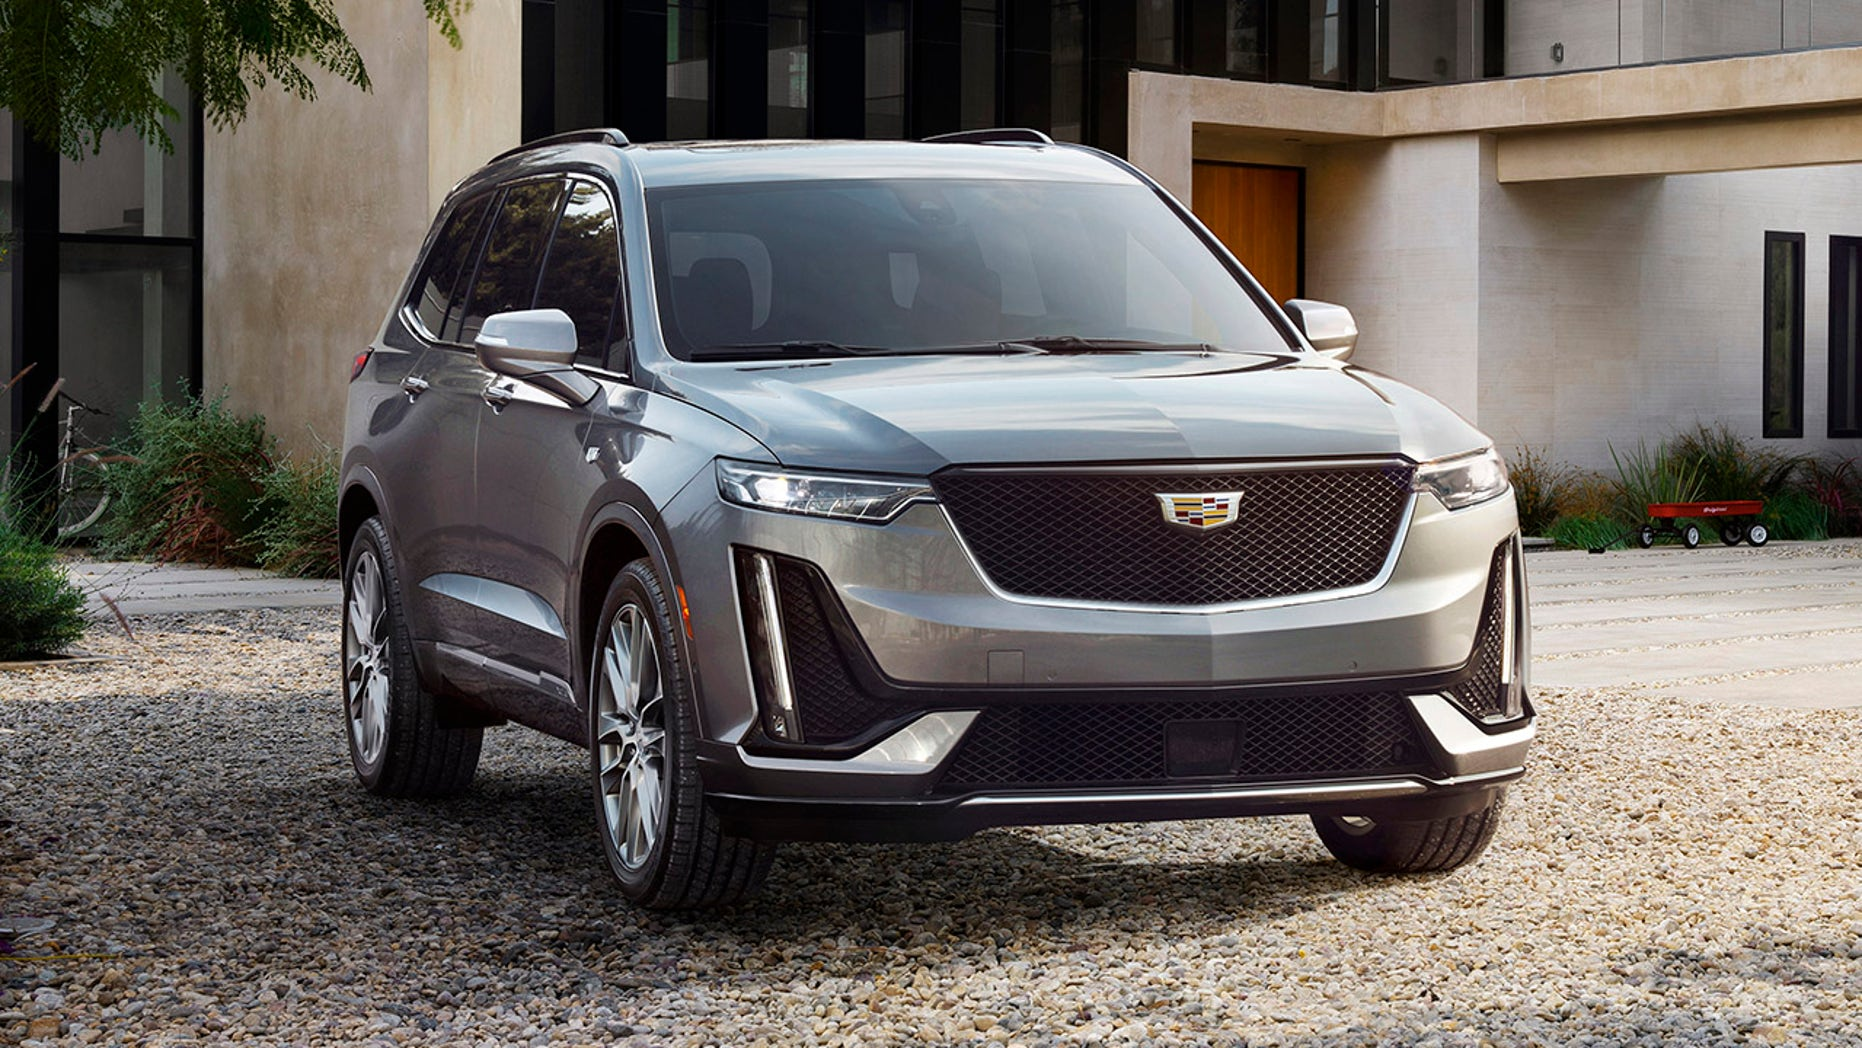 Cadillac Takes Aim at Tesla, Teases All-New Electric SUV for 2022